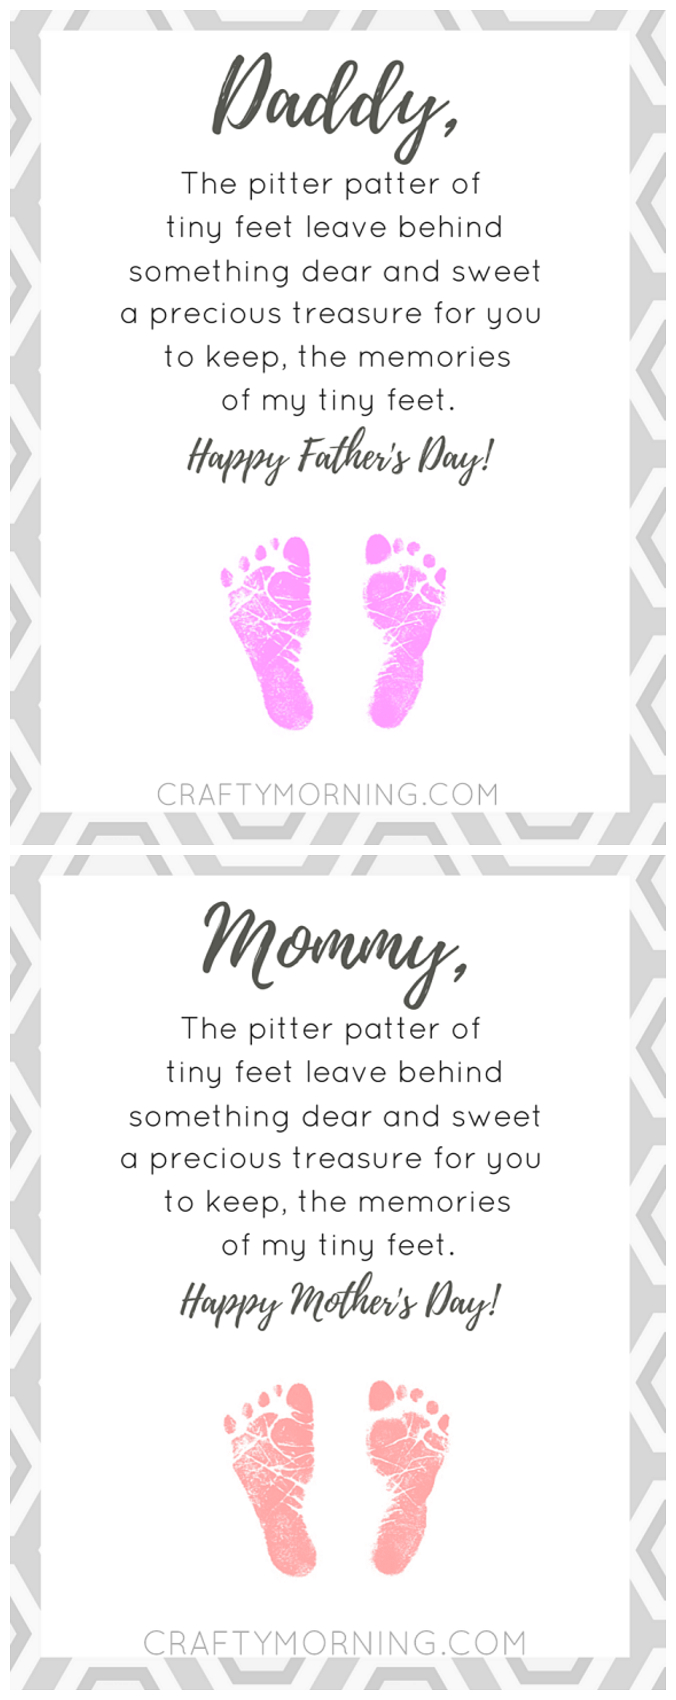 Free Pitter Patter Of Tiny Feet Poem Printable For Mom Or Dad - Free Printable Fathers Day Poems For Preschoolers